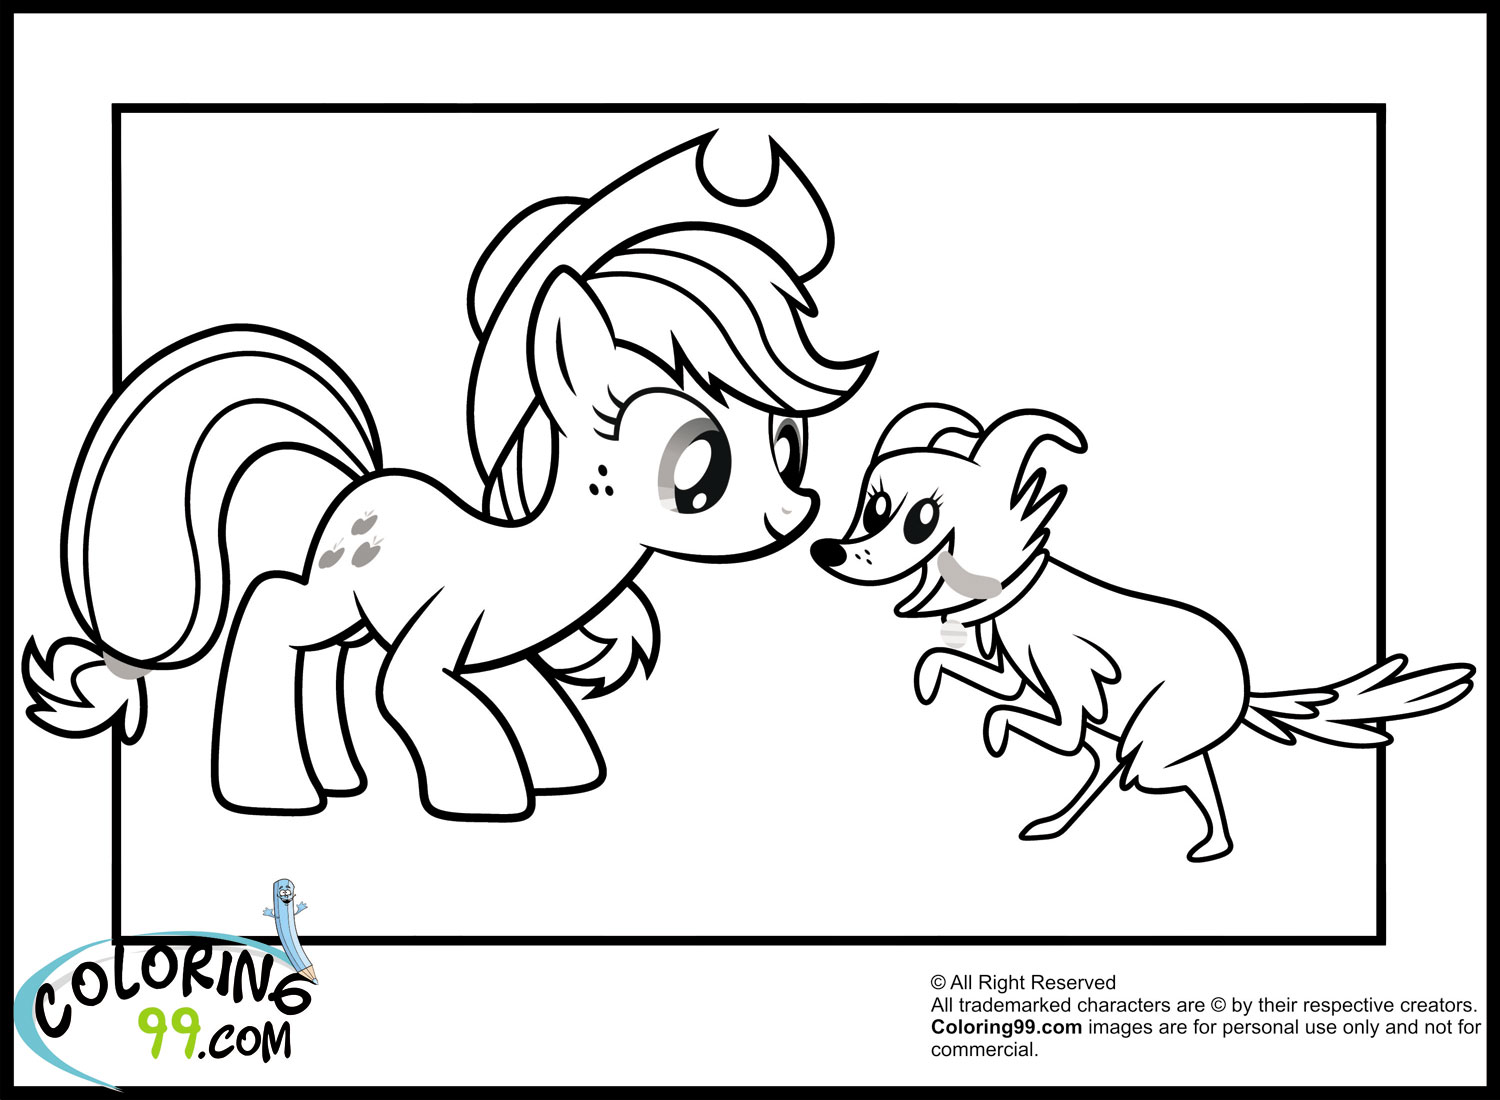 Applejack Coloring Page Coloring Pages Pinterest My Pony Applejack Coloring Pages